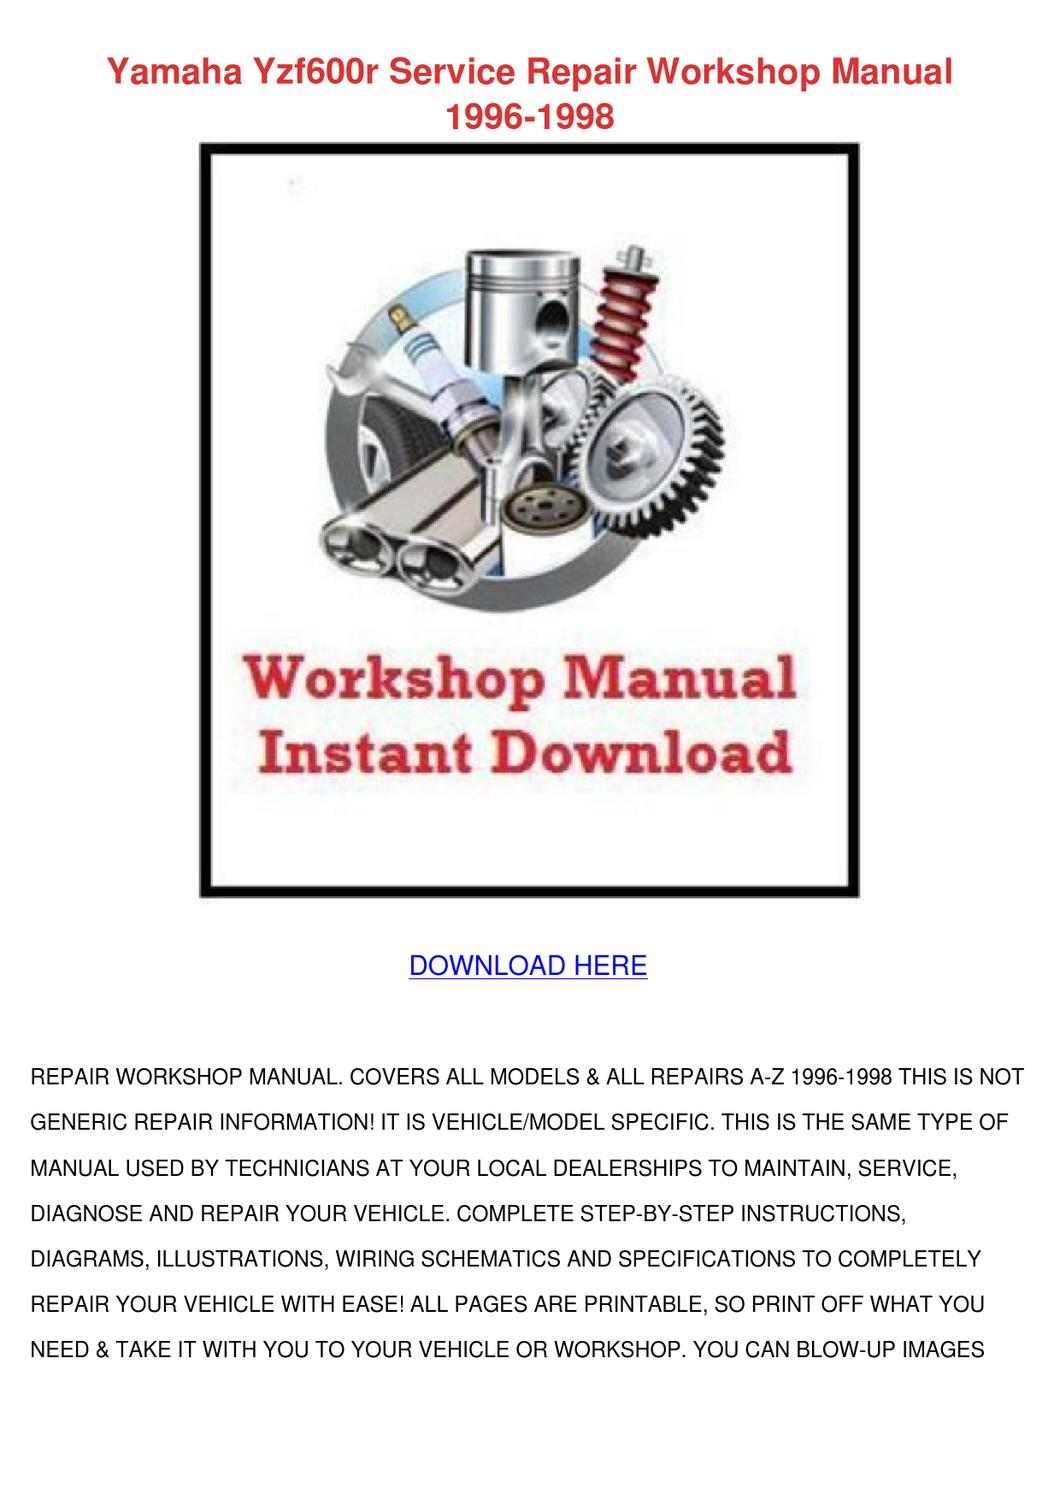 Yamaha Yzf600r Service Repair Workshop Manual by GretchenFitzpatrick - issuu